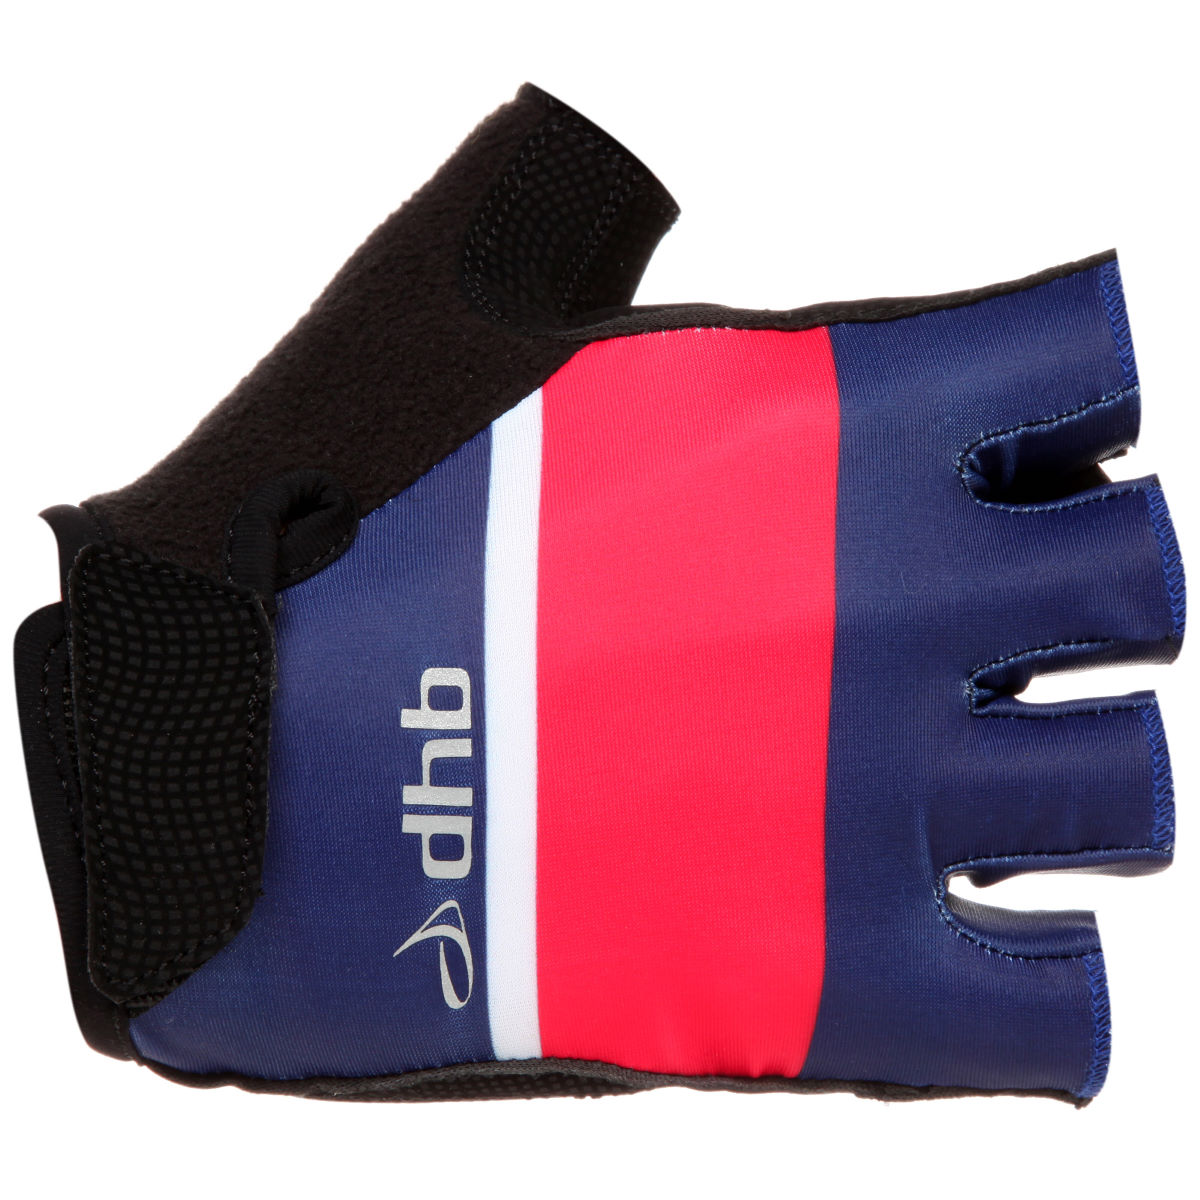 Gants courts dhb Classic - XL Blue/Red Gants courts